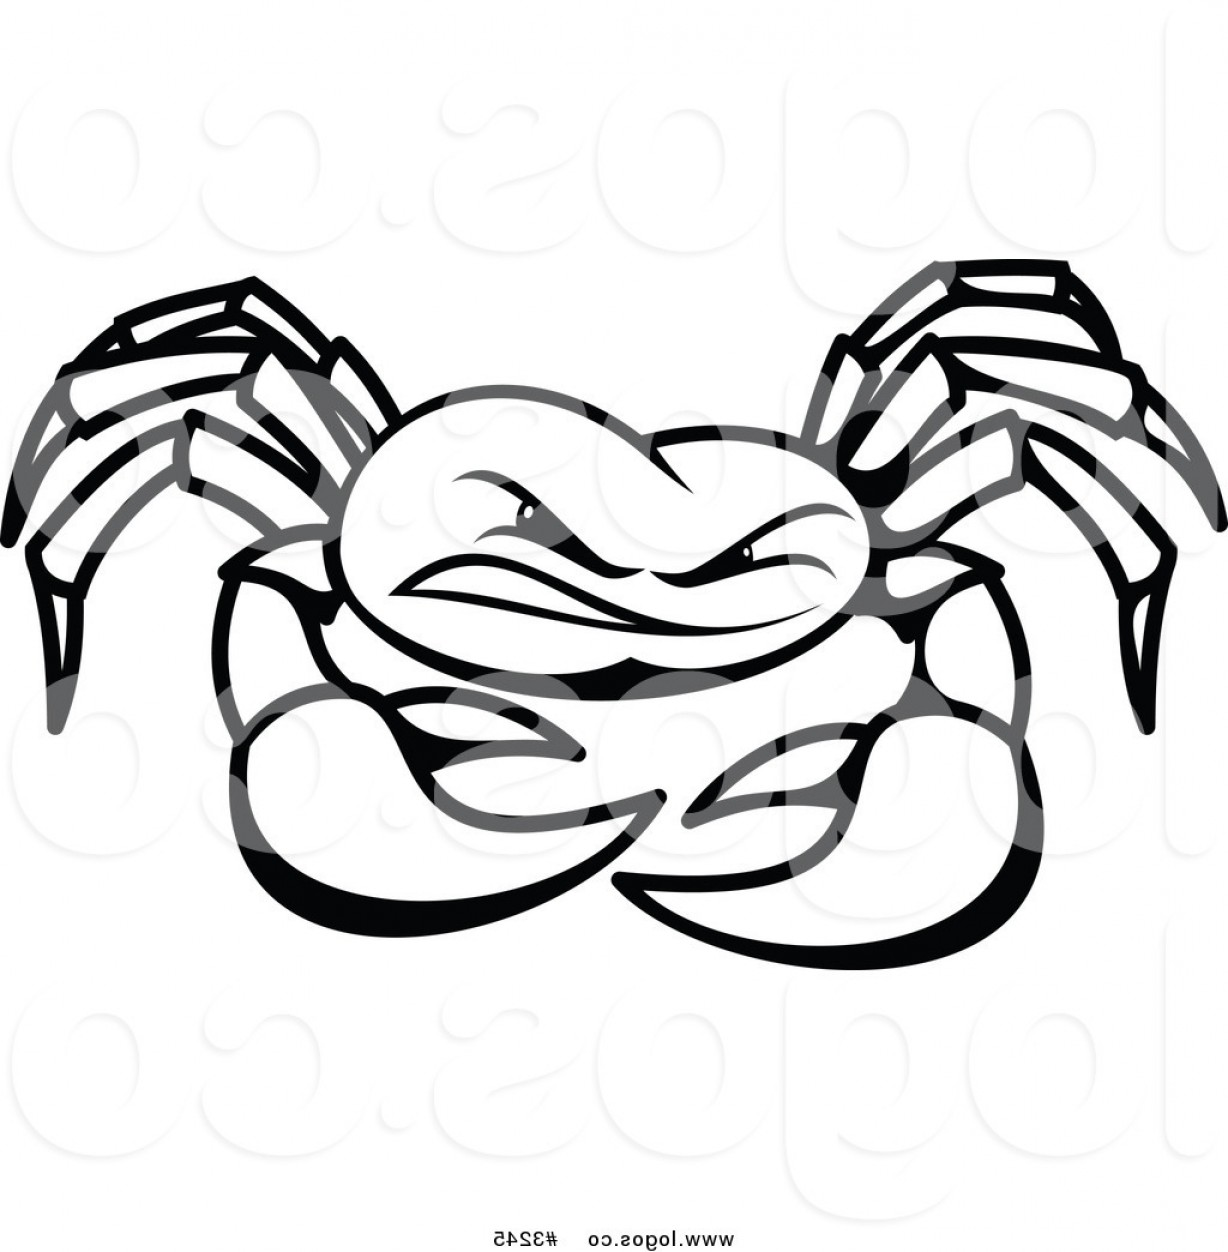 Crab Vector Black: Royalty Free Vector Of A Black And White Crab Logo By Vector Tradition Sm